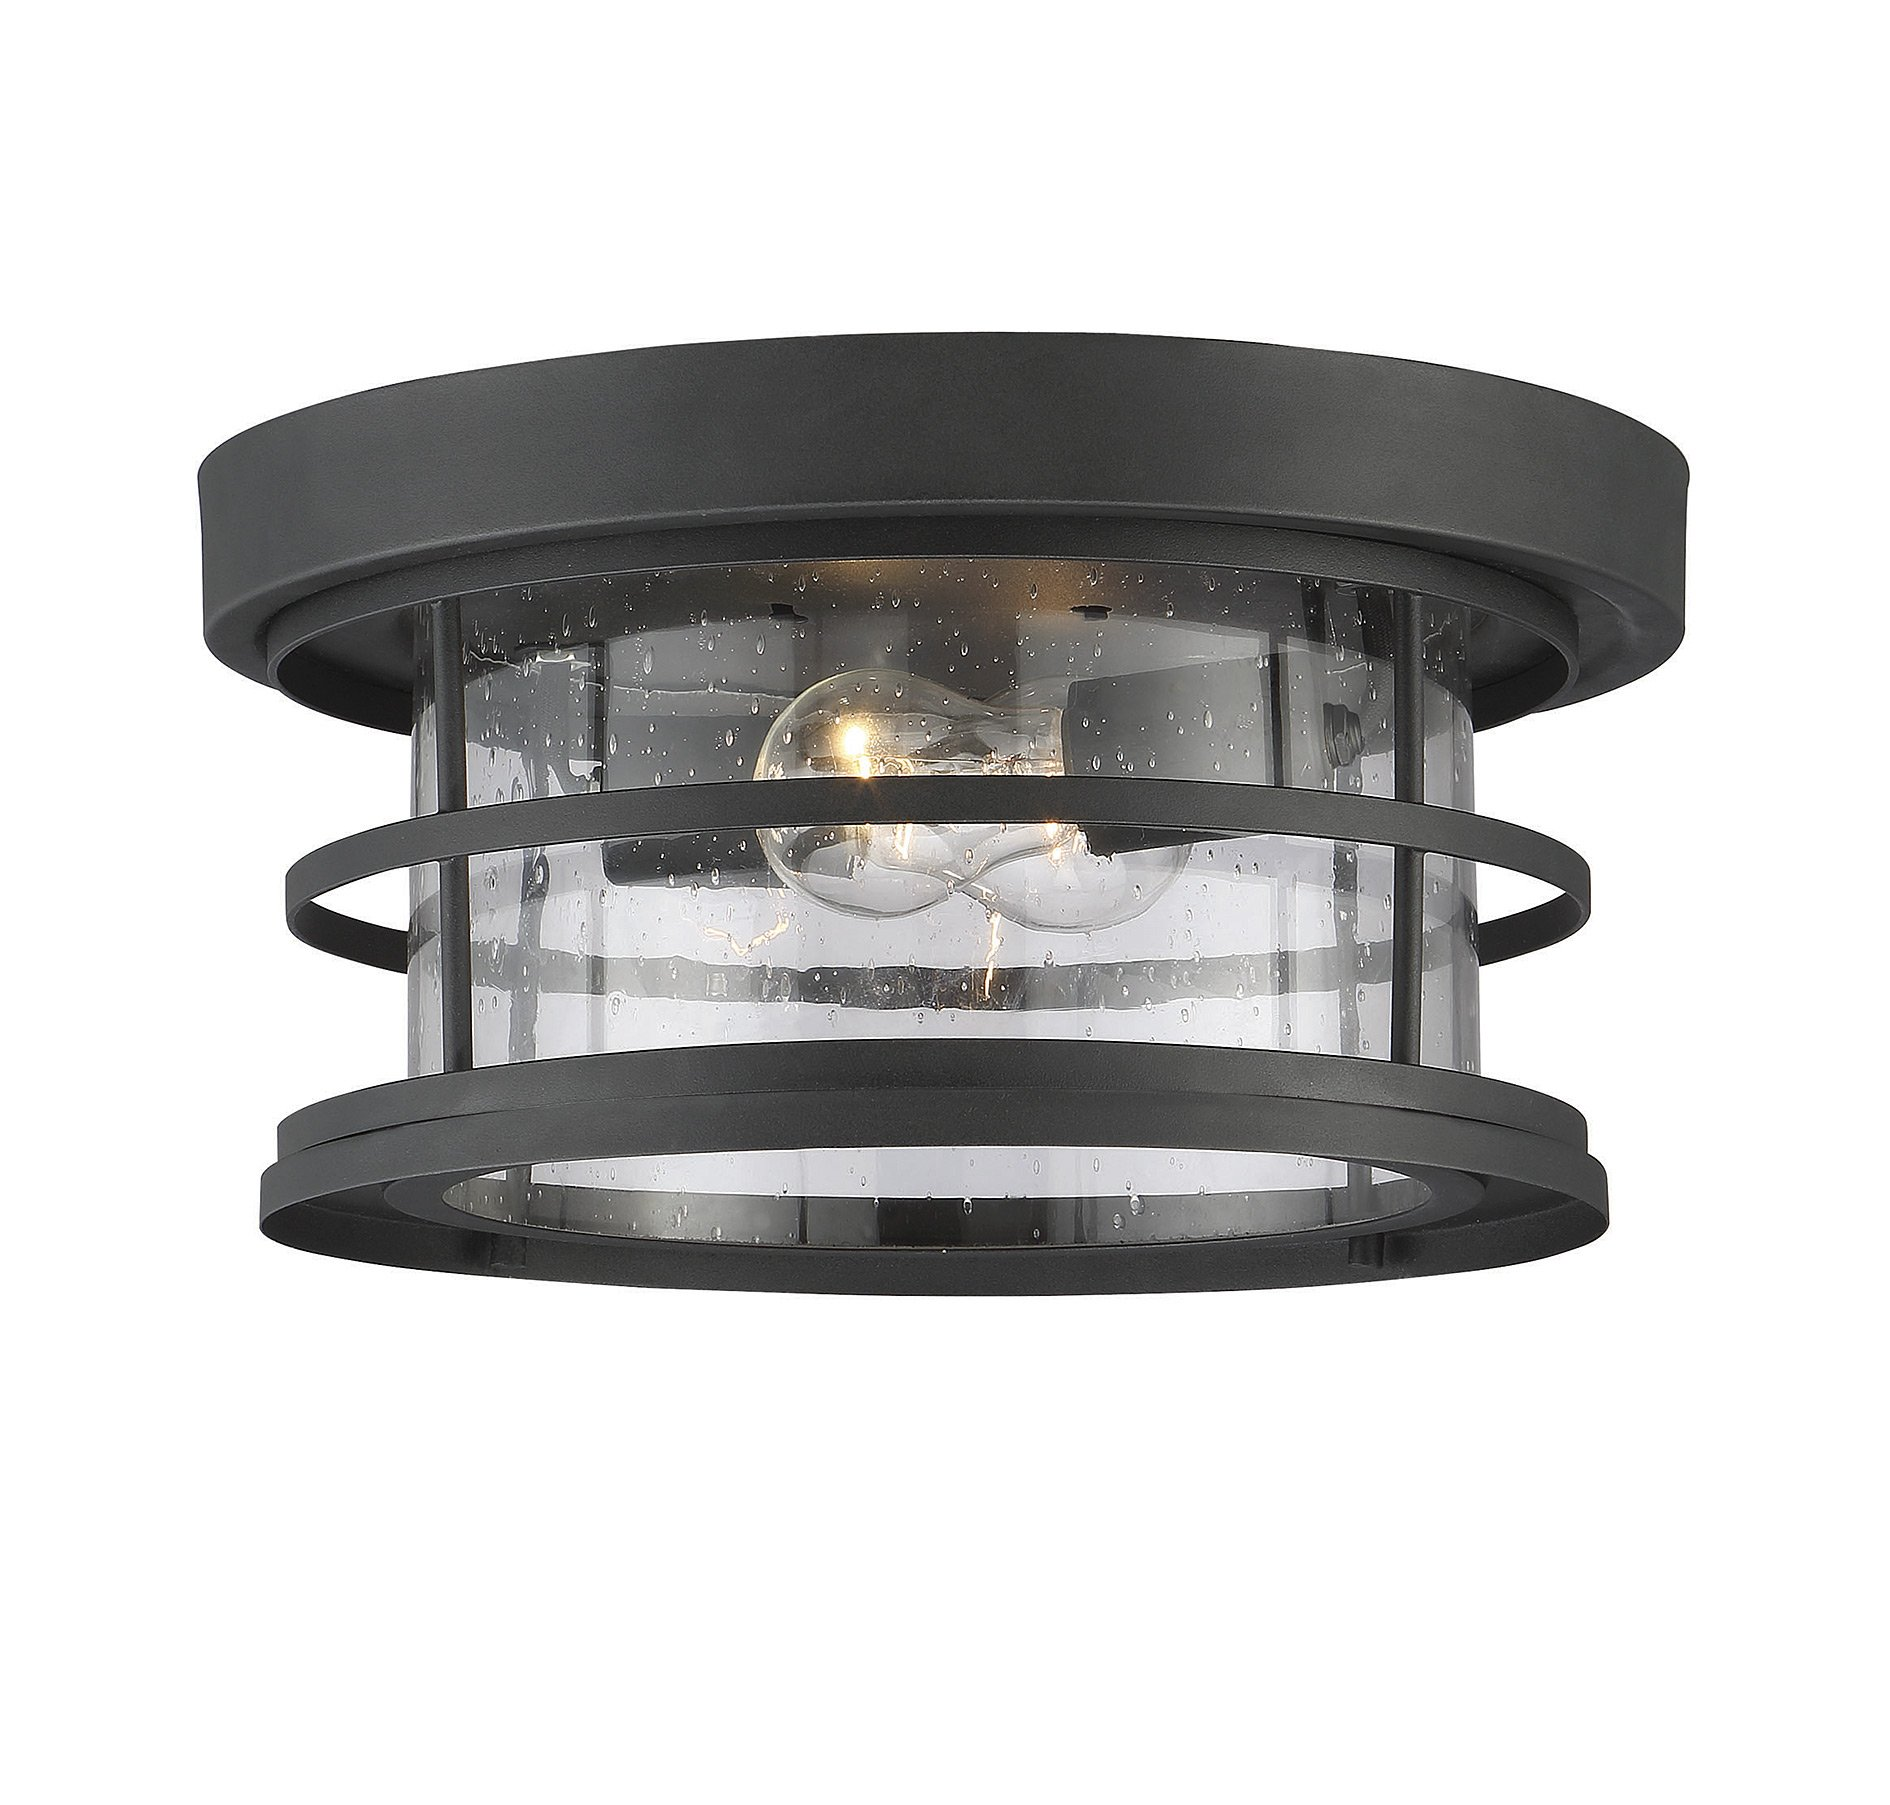 Savoy House Barrett 13'' Outdoor Ceiling Light in Black 5-369-13-BK